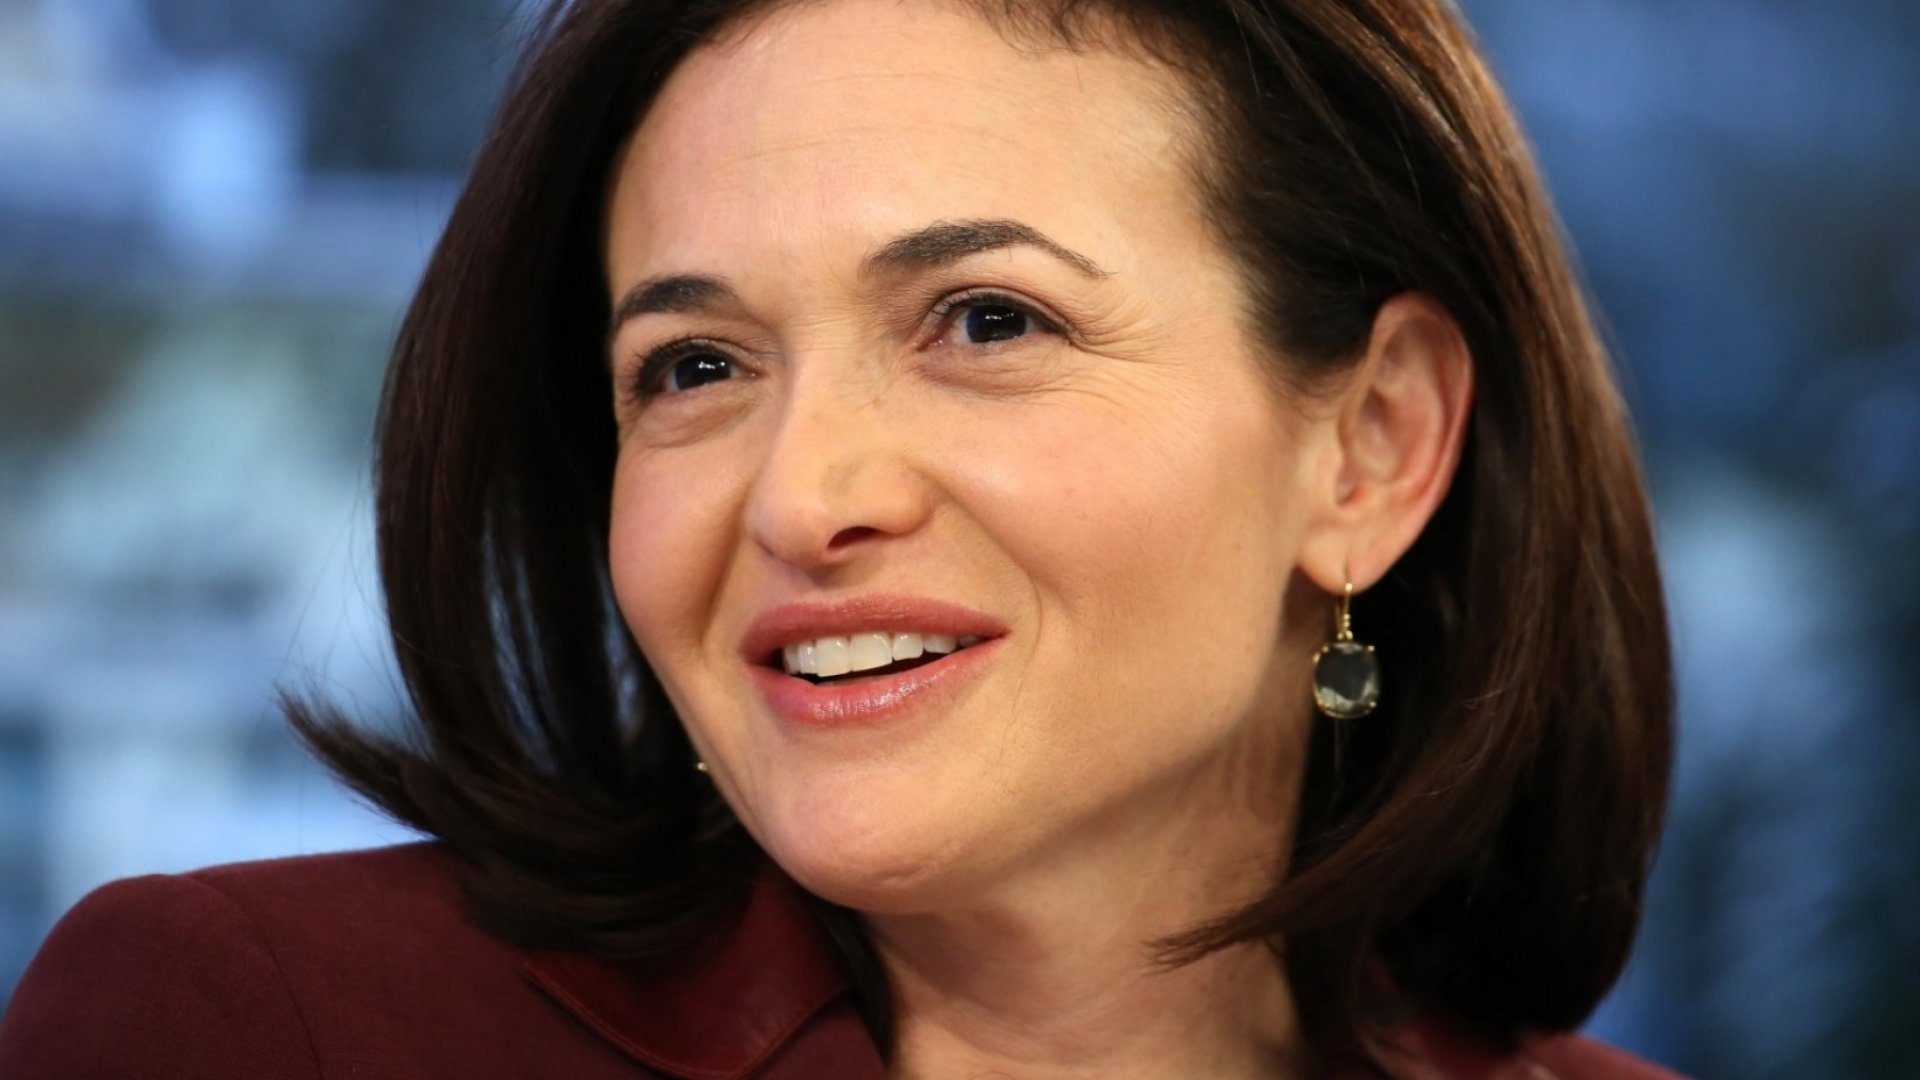 Sheryl Sandberg on What's Wrong With the Workplace